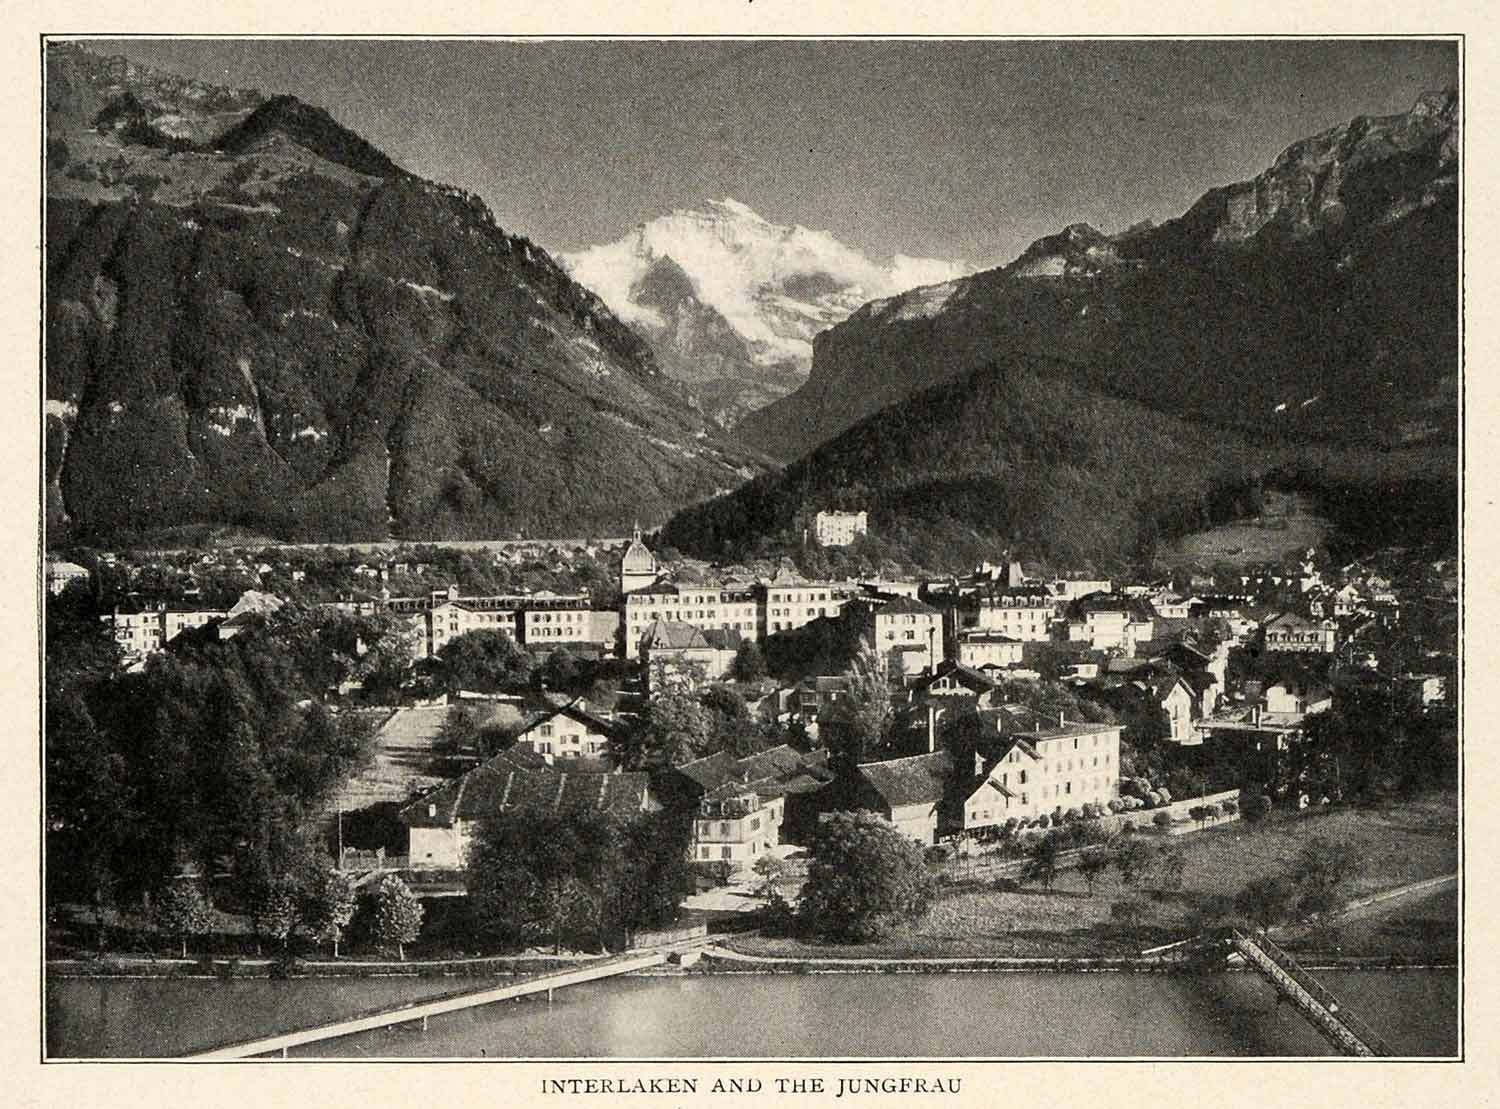 1910 Print Interlaken Mount Jungfrau Switzerland Bern Aarmhule Lake Brienz XGM2